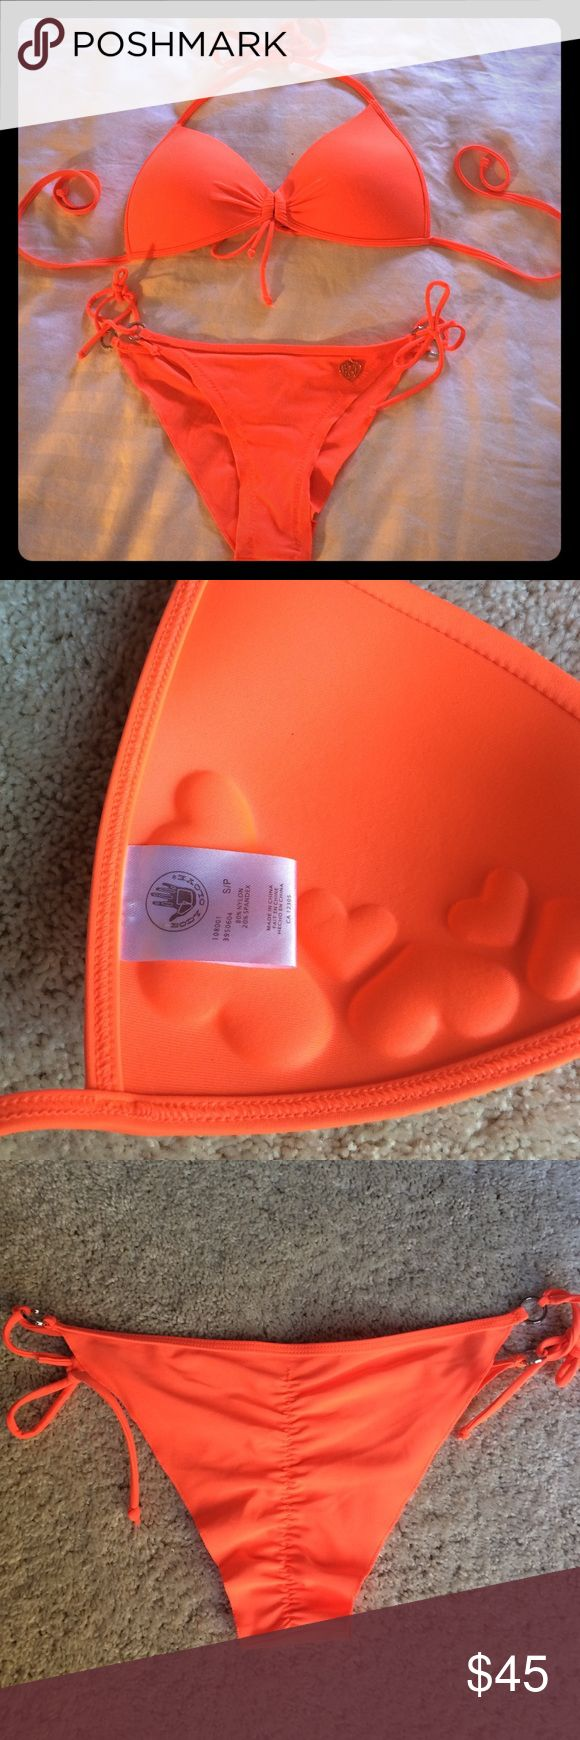 NWOT Body Glove Orange Bikini Bright orange Body Glove bikini w/ push-up top & scrunch butt bottoms. Bottoms fit true to a size x-small and have minimal coverage. Top is a small but could also fit a size medium. BRAND NEW/NEVER WORN! Re-Poshing this suit because the bottoms are way too small on me :( Body Glove Swim Bikinis